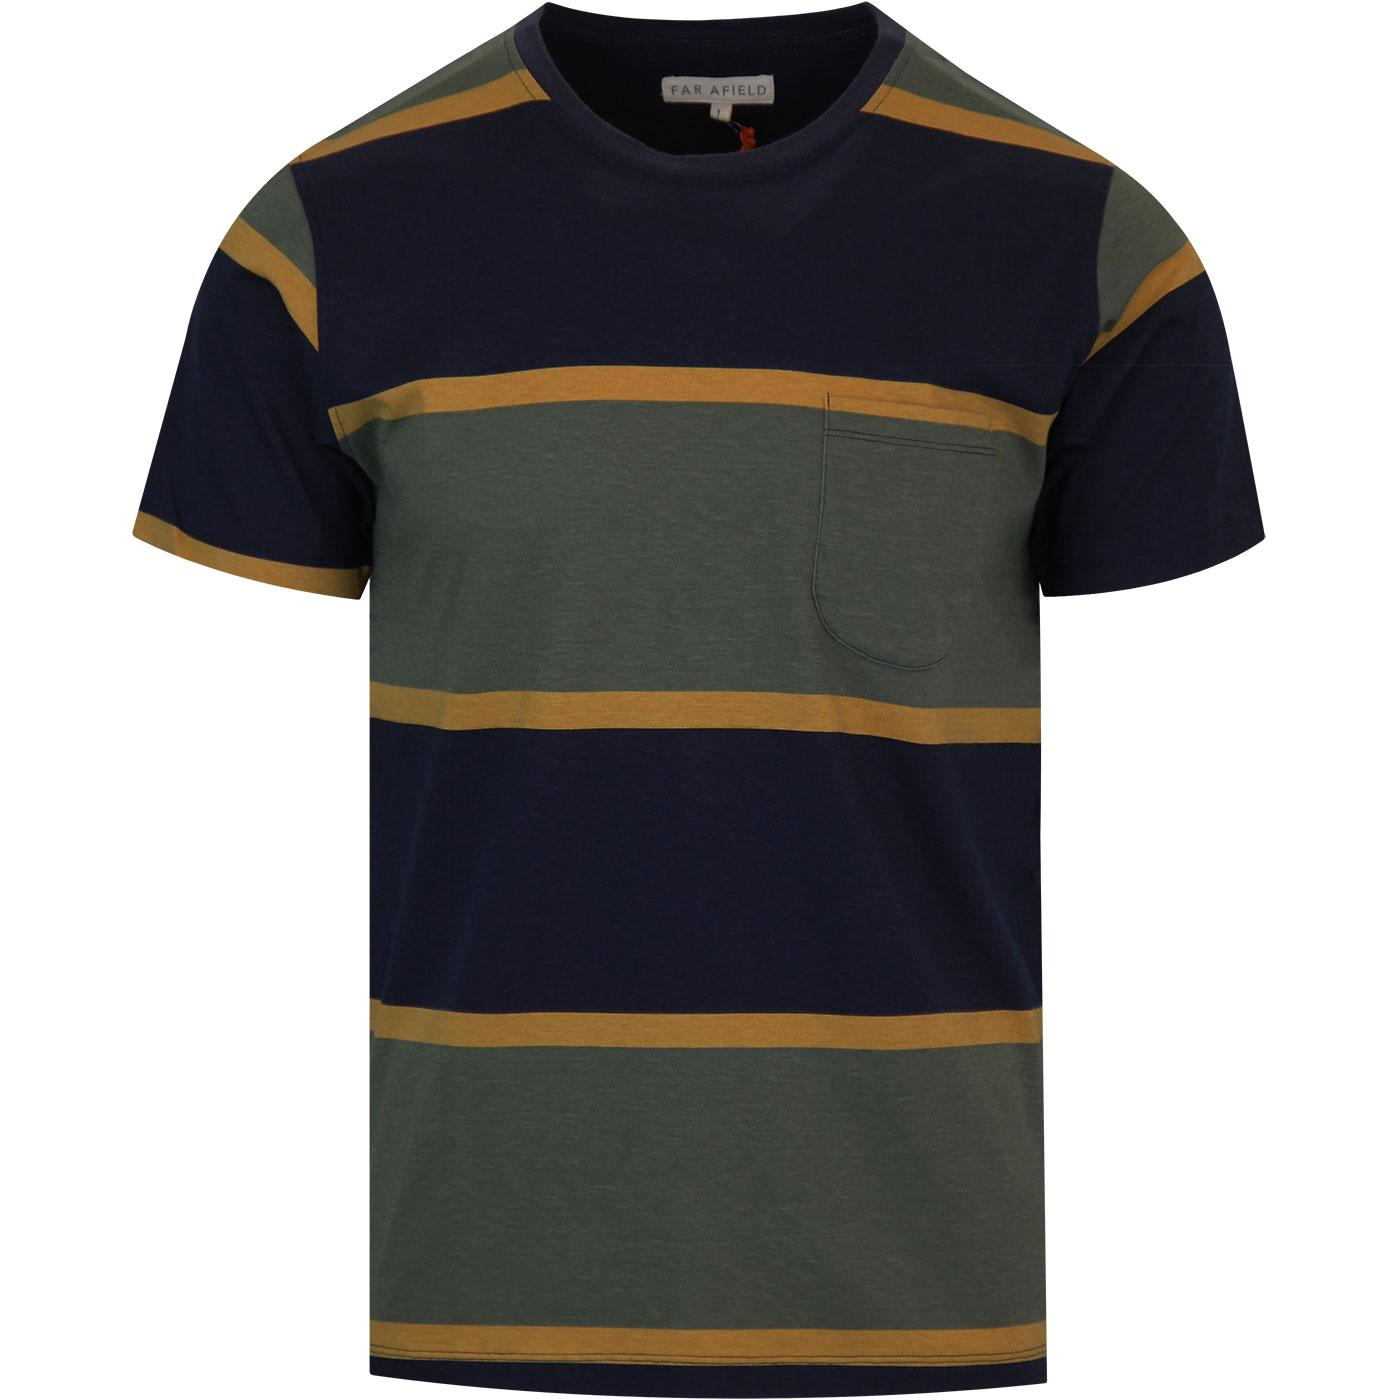 FAR AFIELD Dos Stripe Retro Mod Tee (Beatle Green)